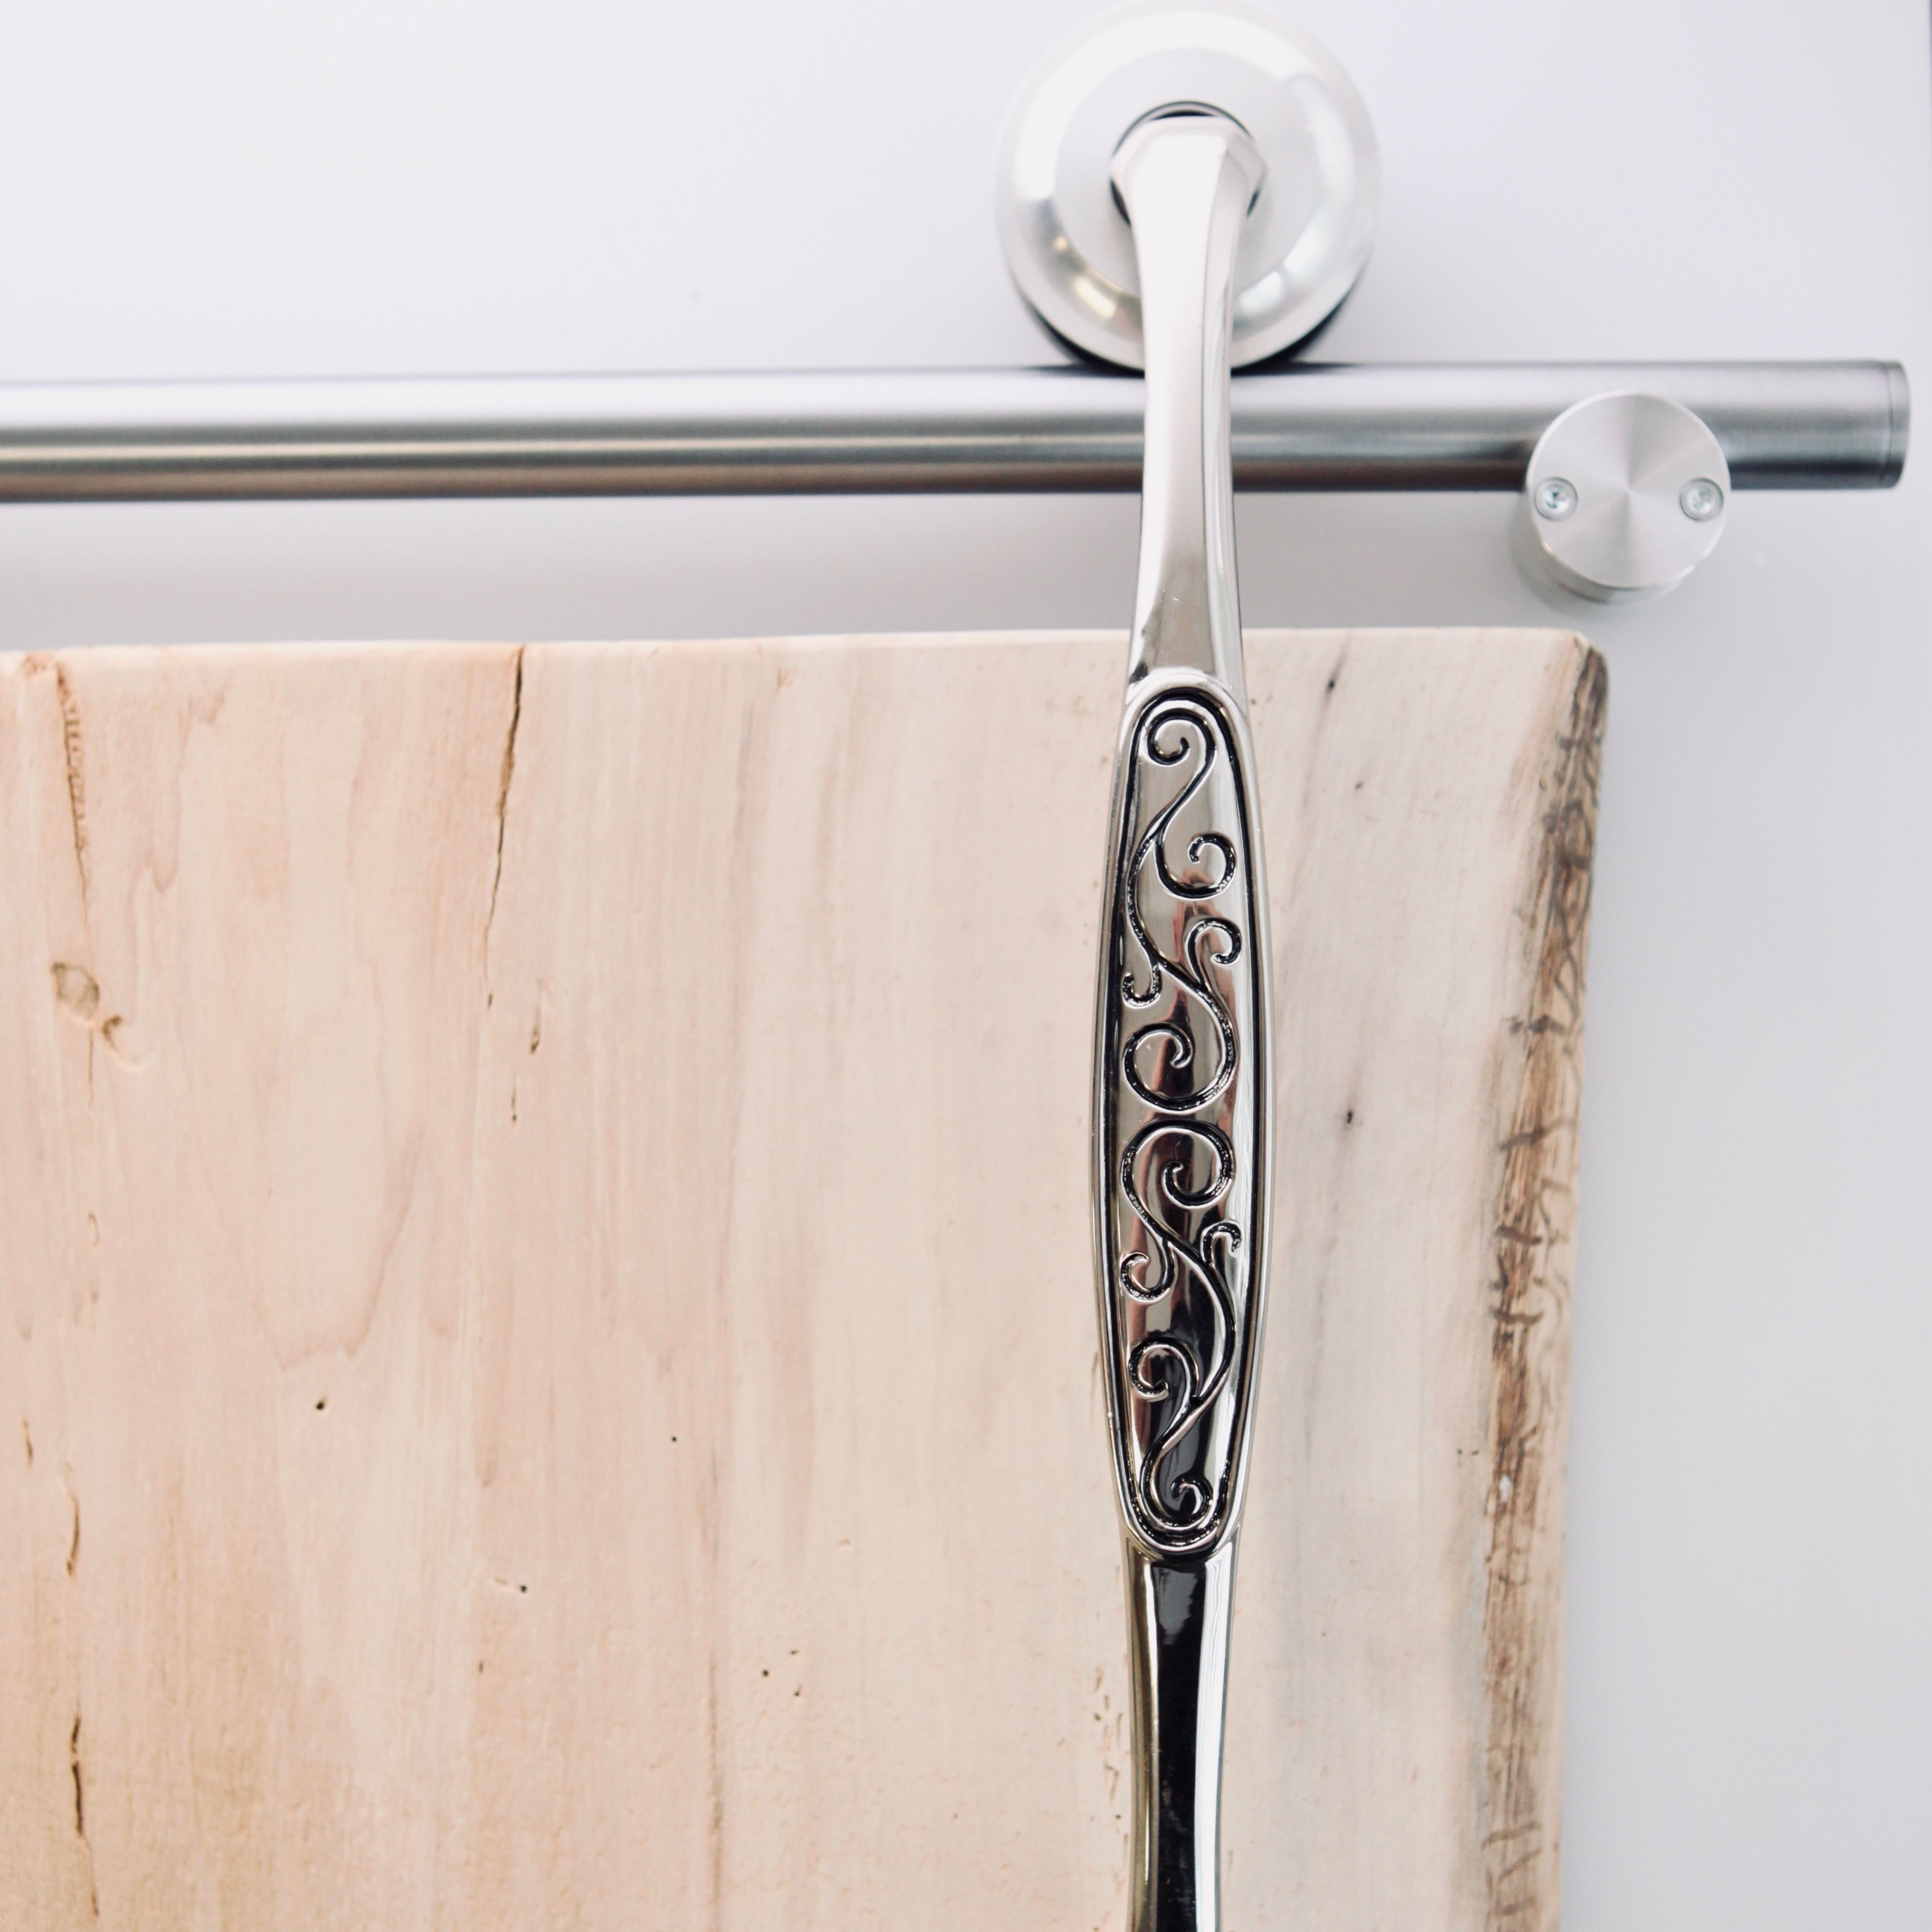 The Rustica Modern Barn Door Hardware Tube Track System Is -9727